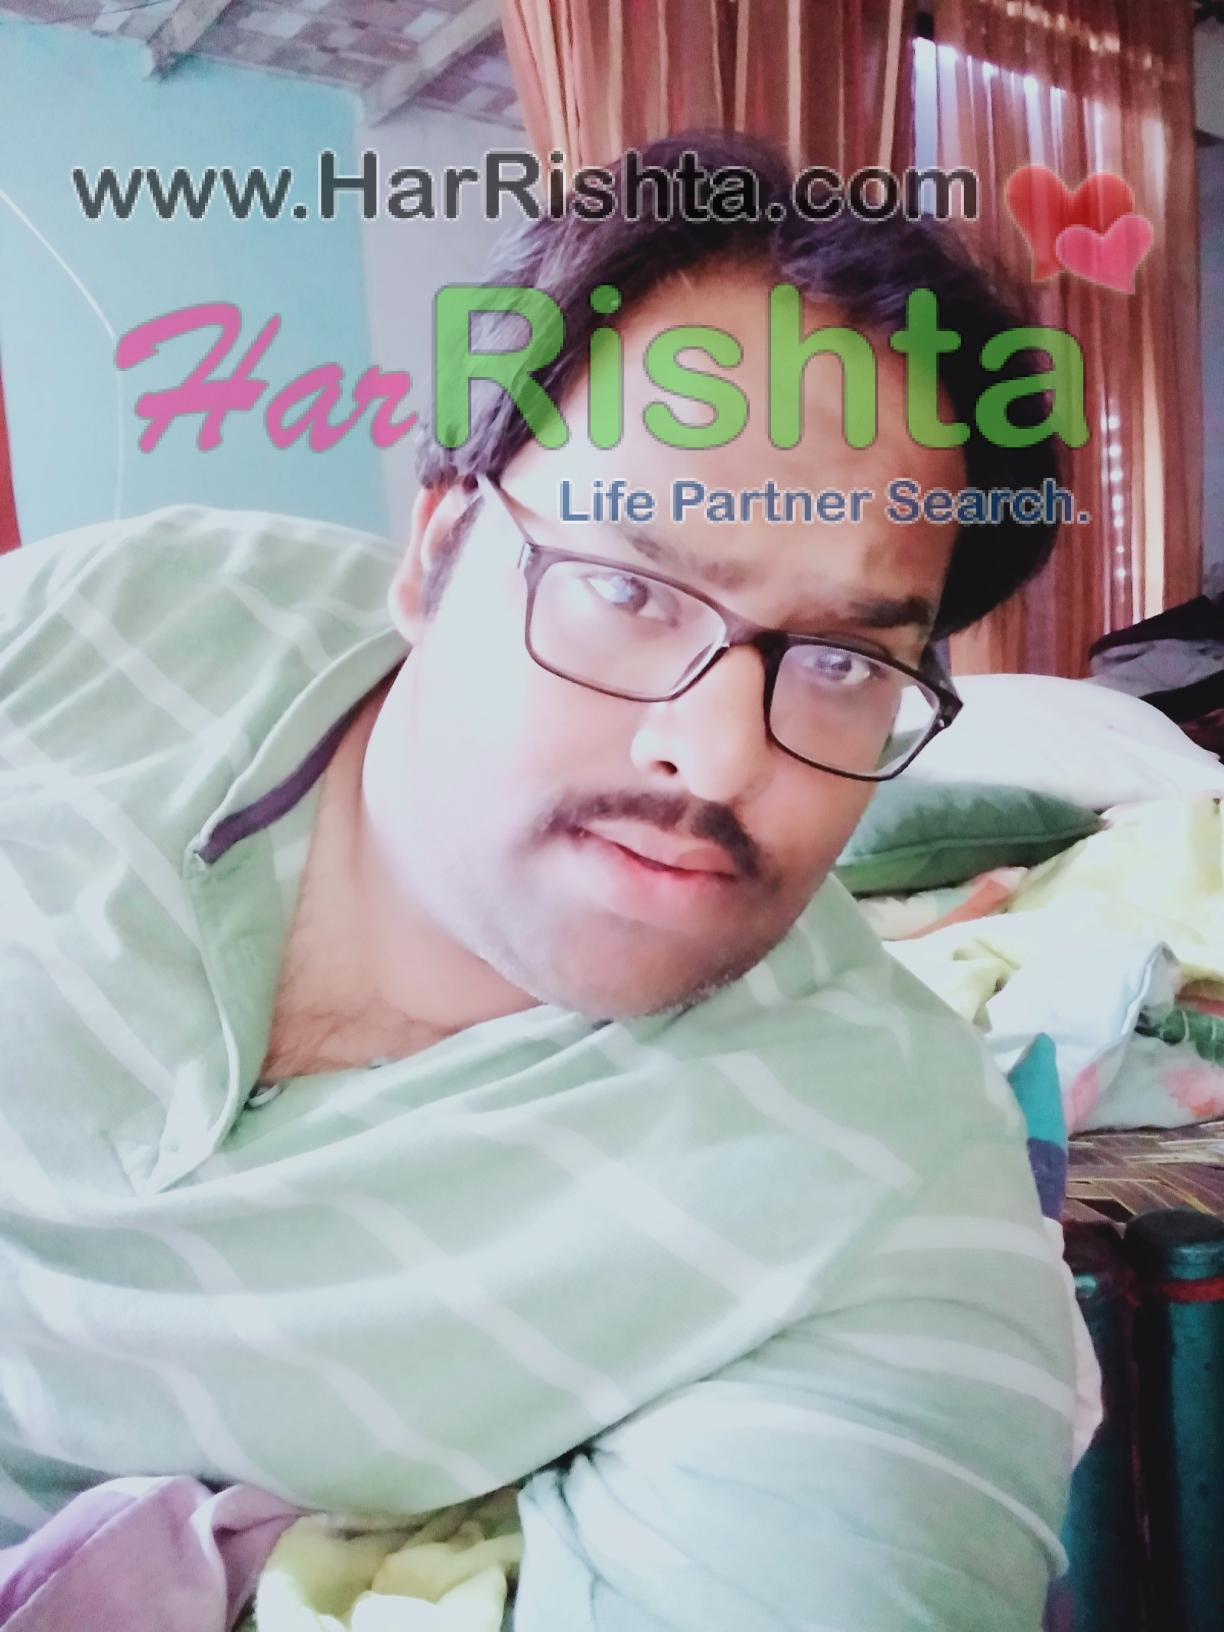 Other Boy Rishta in Lahore